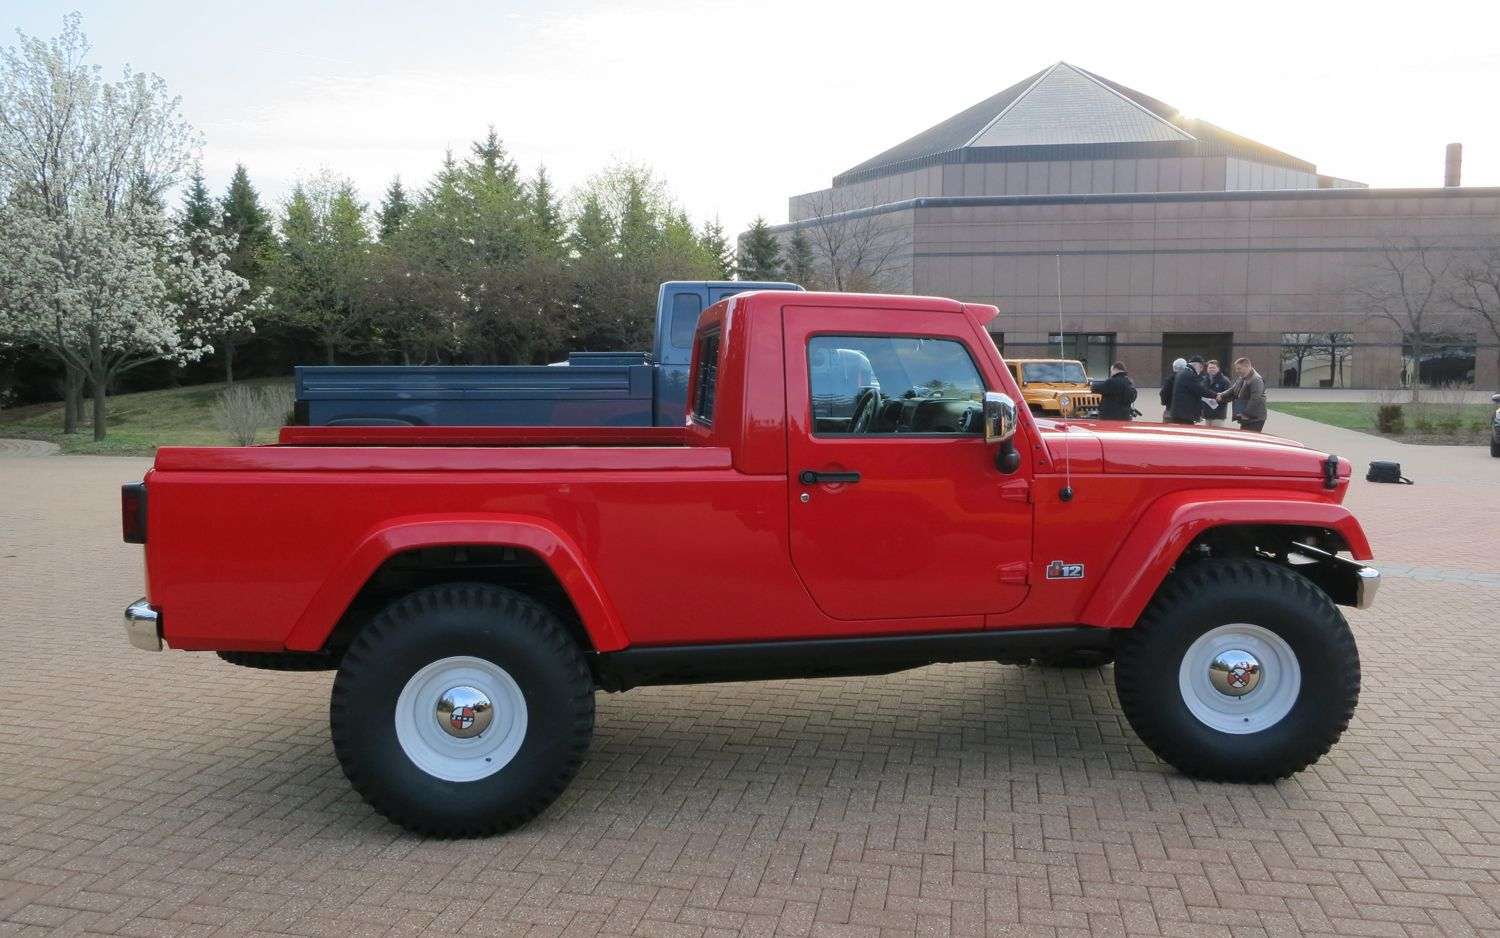 Jeep Ceo Hints At Diesel Pickup Options For Next Gen Wrangler